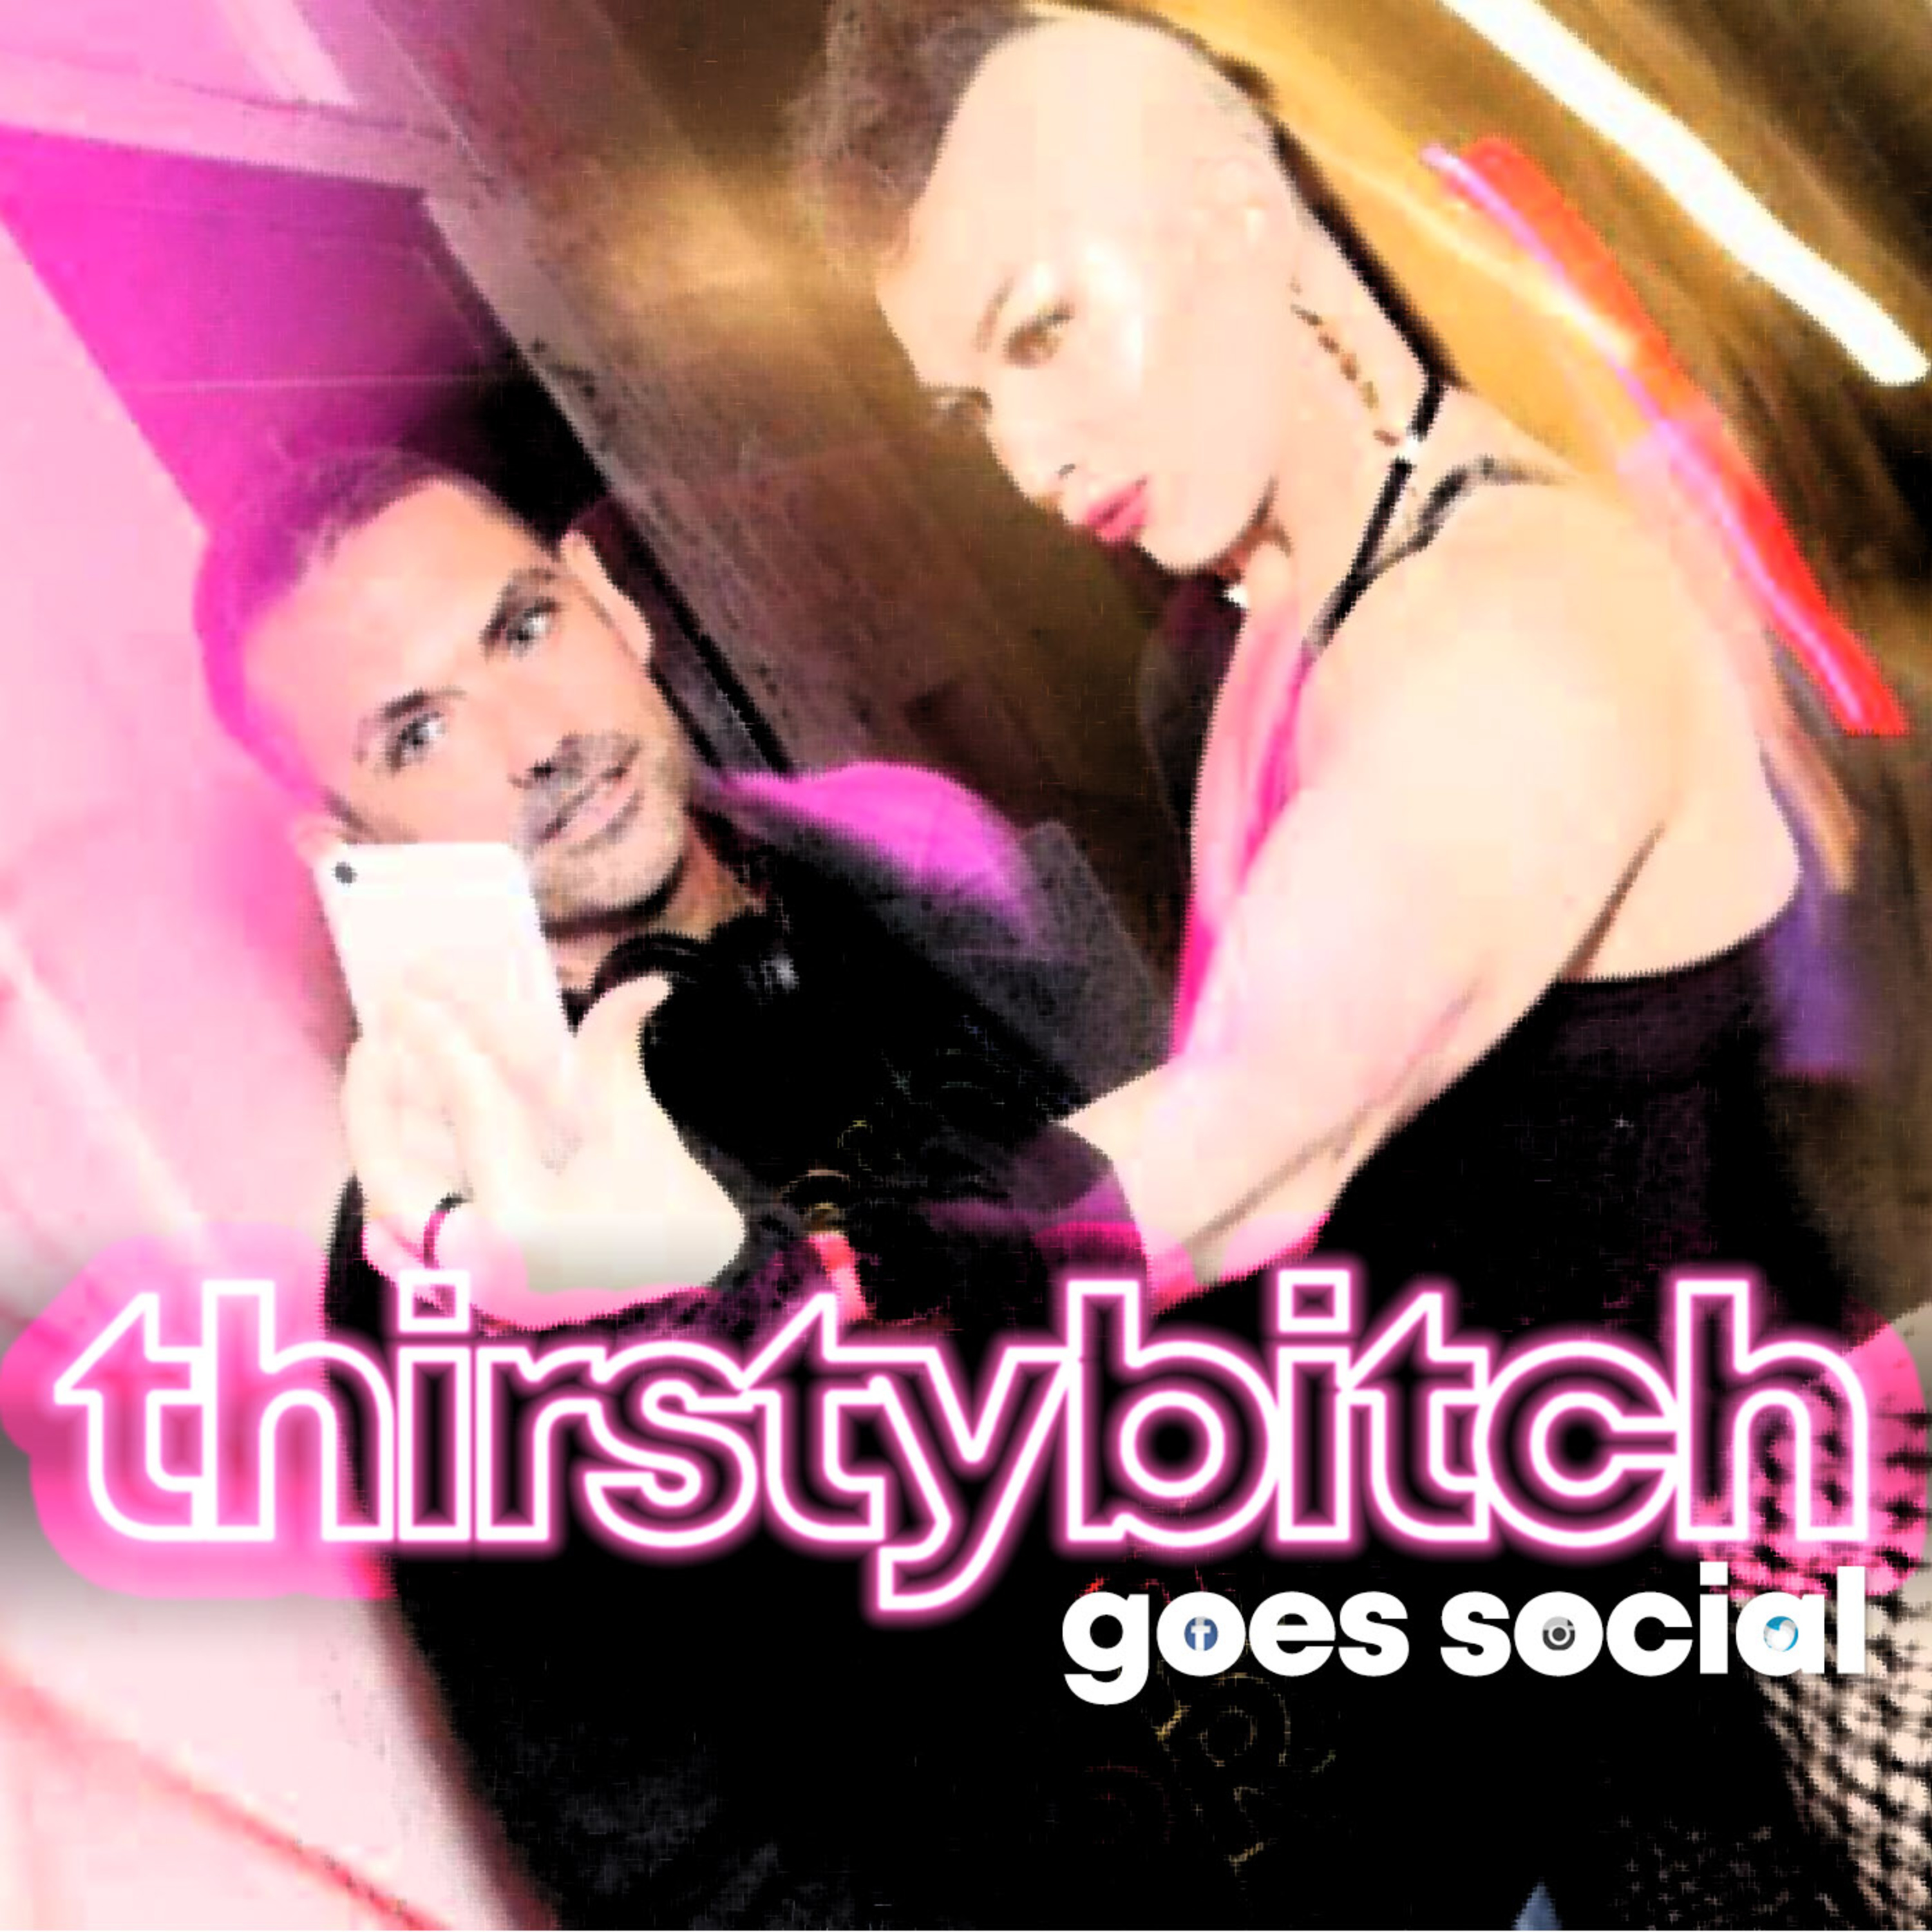 Thirsty Bitch Goes Social